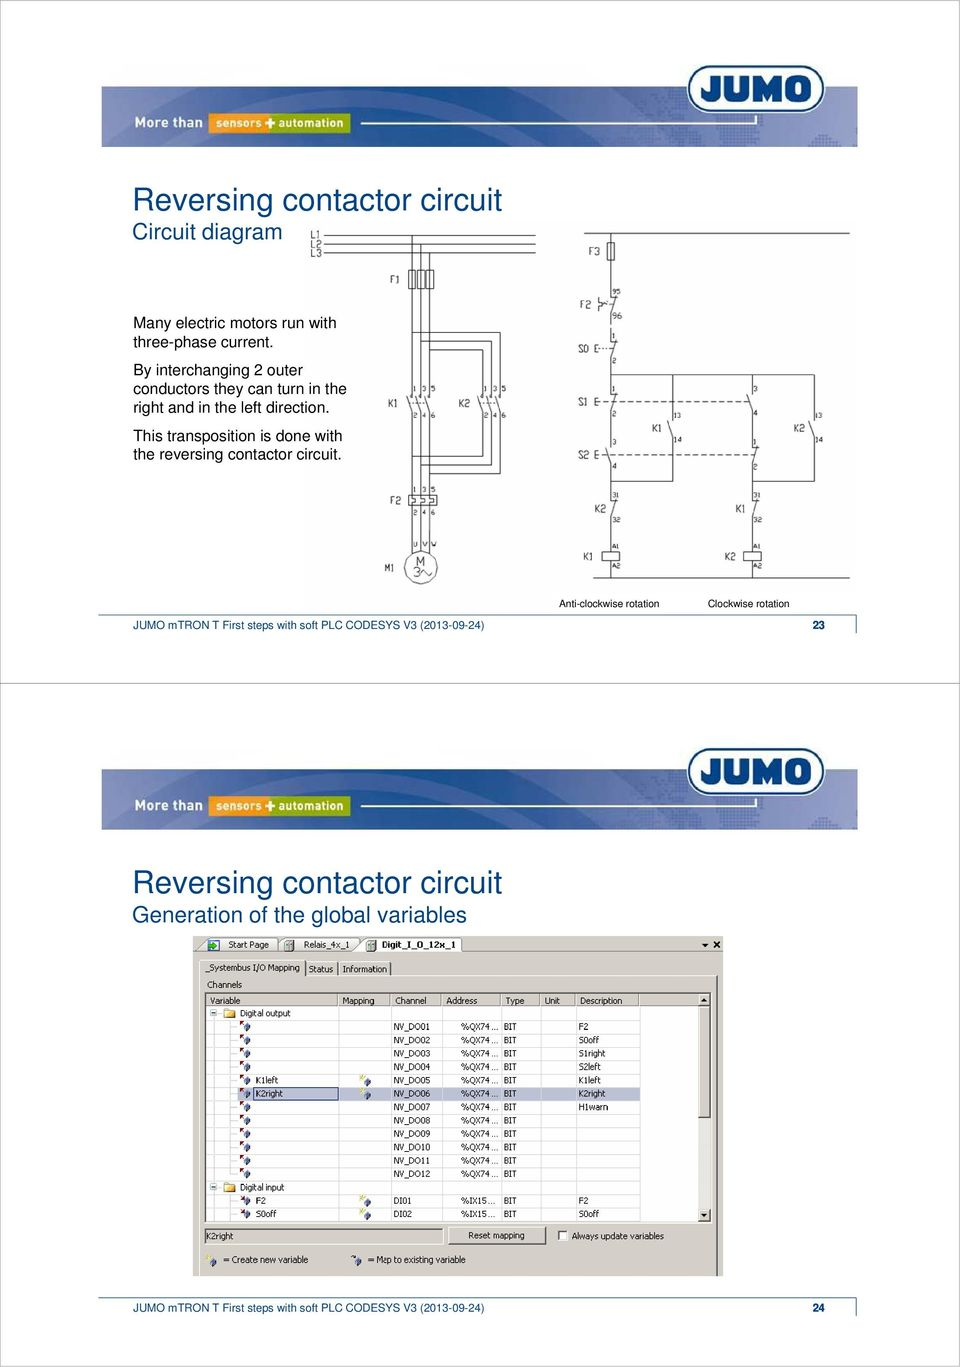 Welcome  JUMO mtron T  Average calculation  First steps with soft